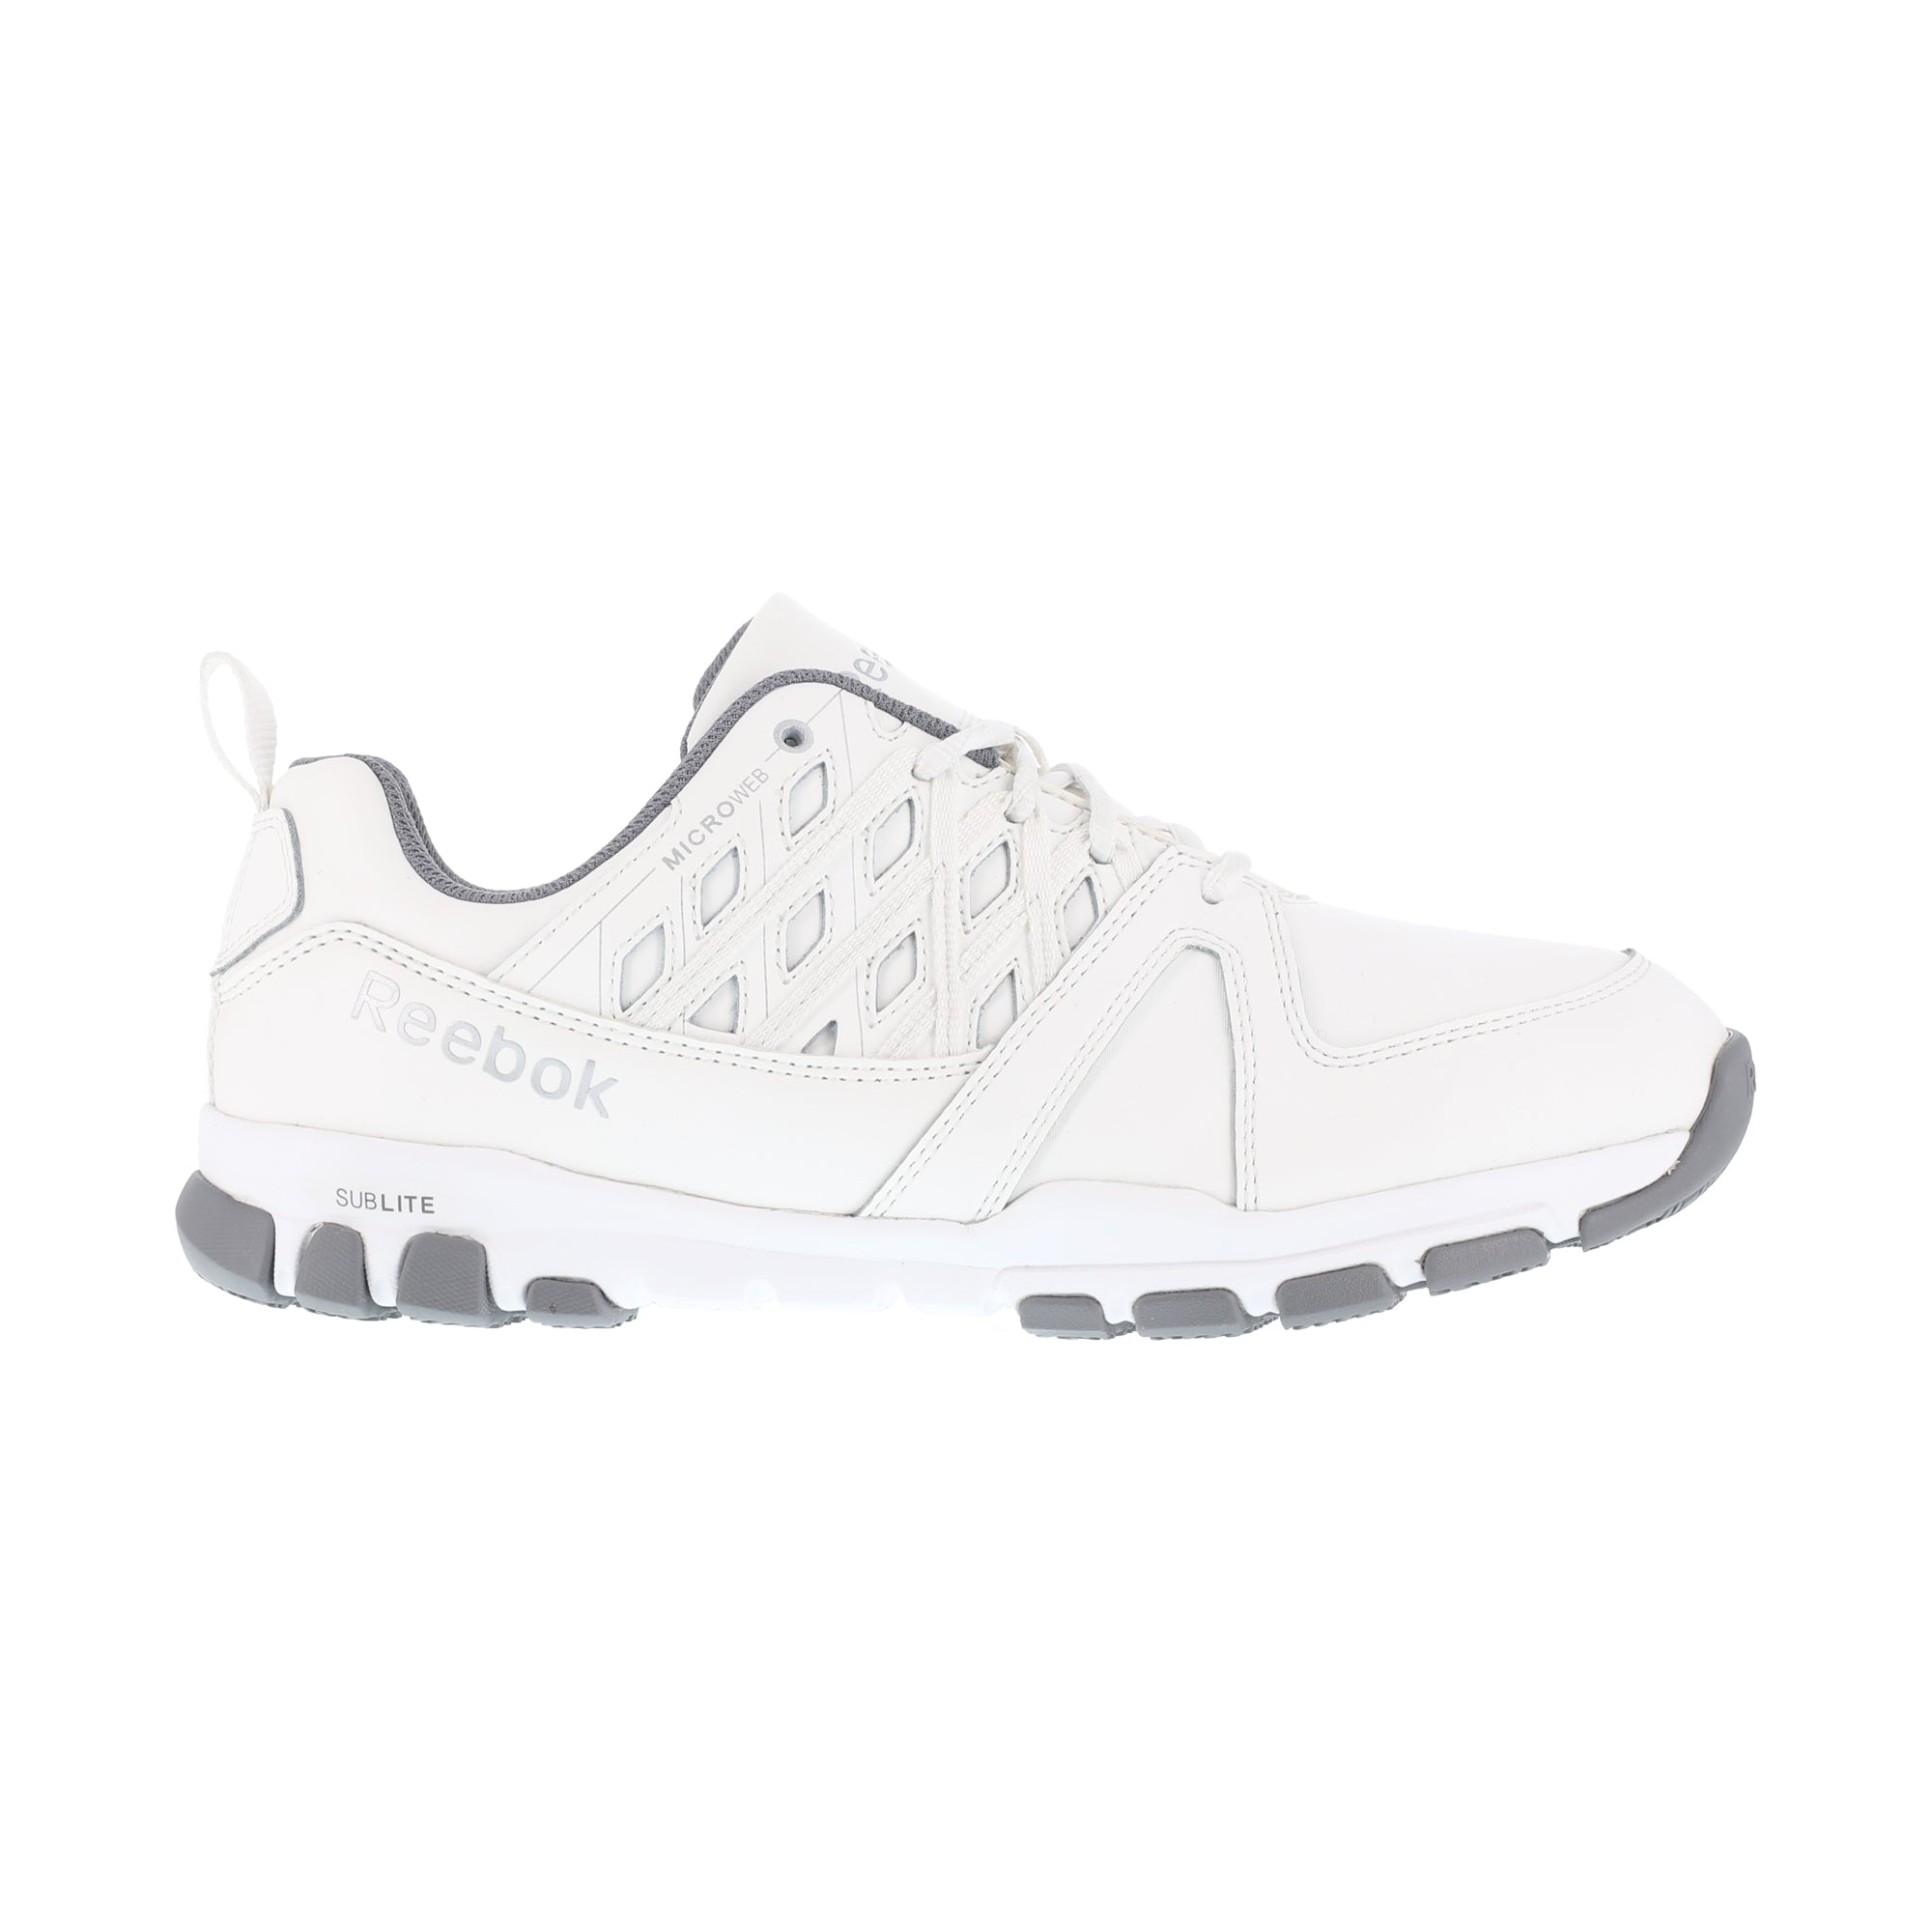 9612ddbe005f Reebok Womens White Leather Work Shoes AT Sublite Cushion – The ...